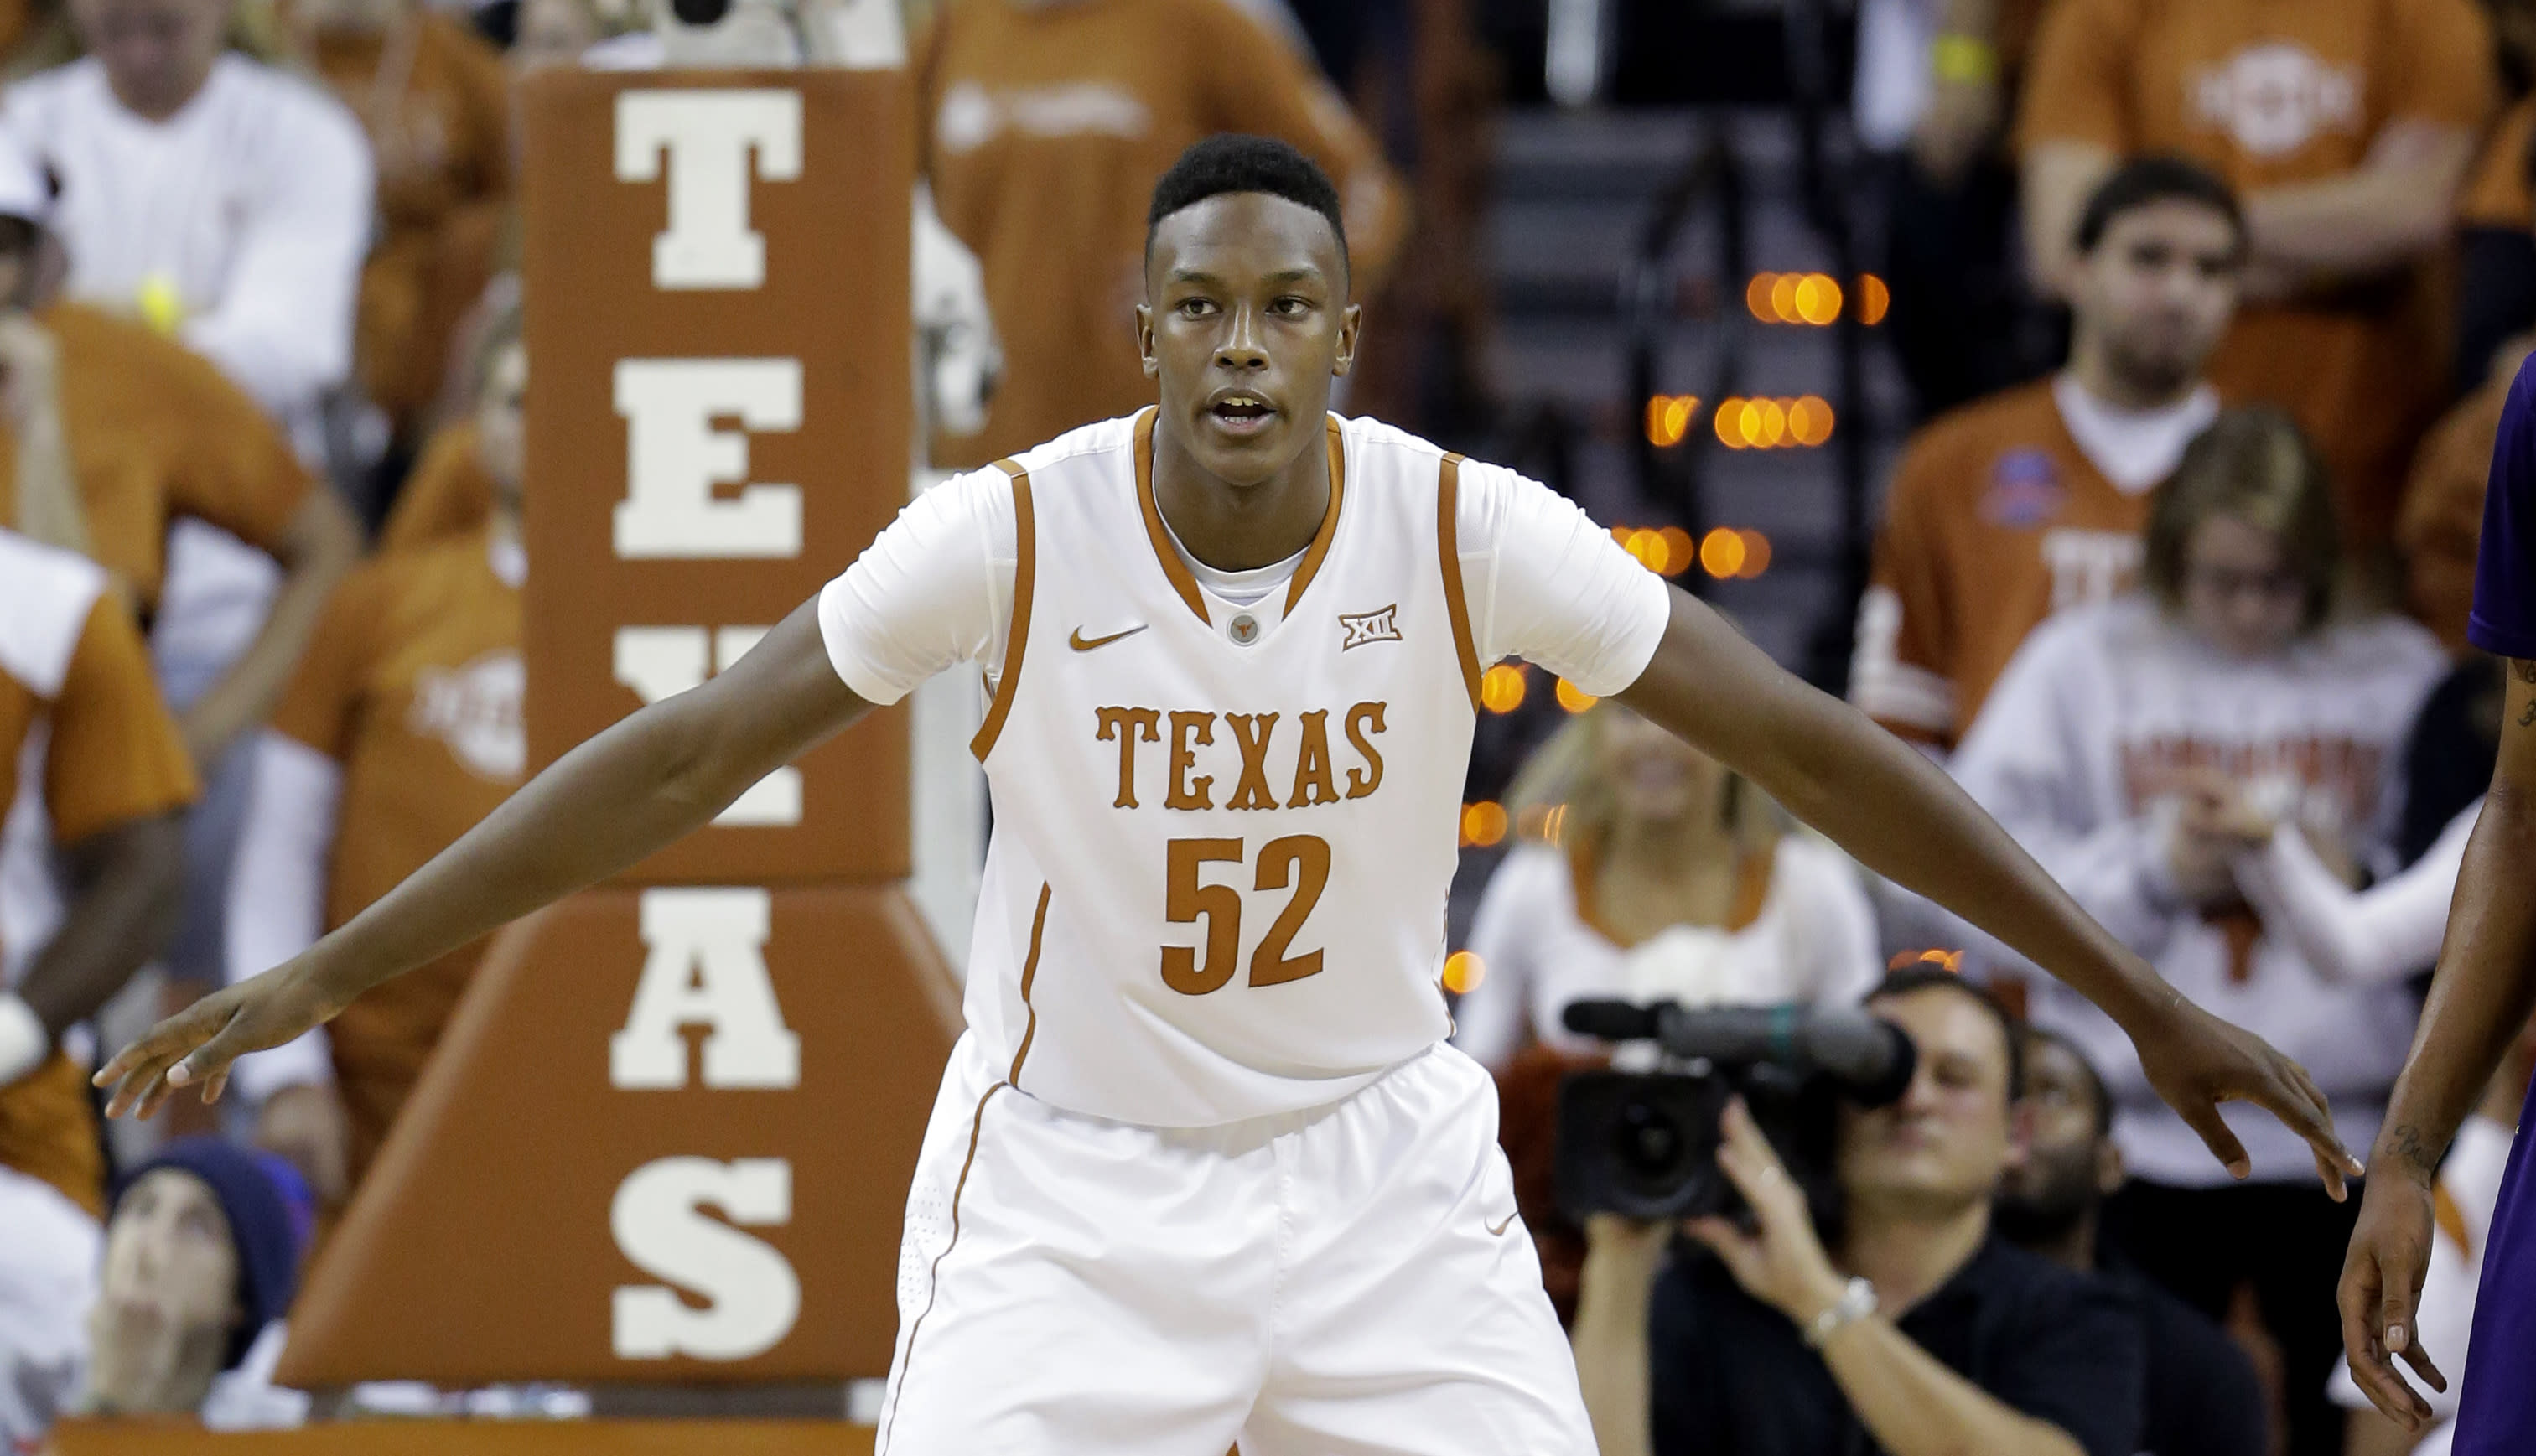 Highly touted Myles Turner will enter the NBA draft